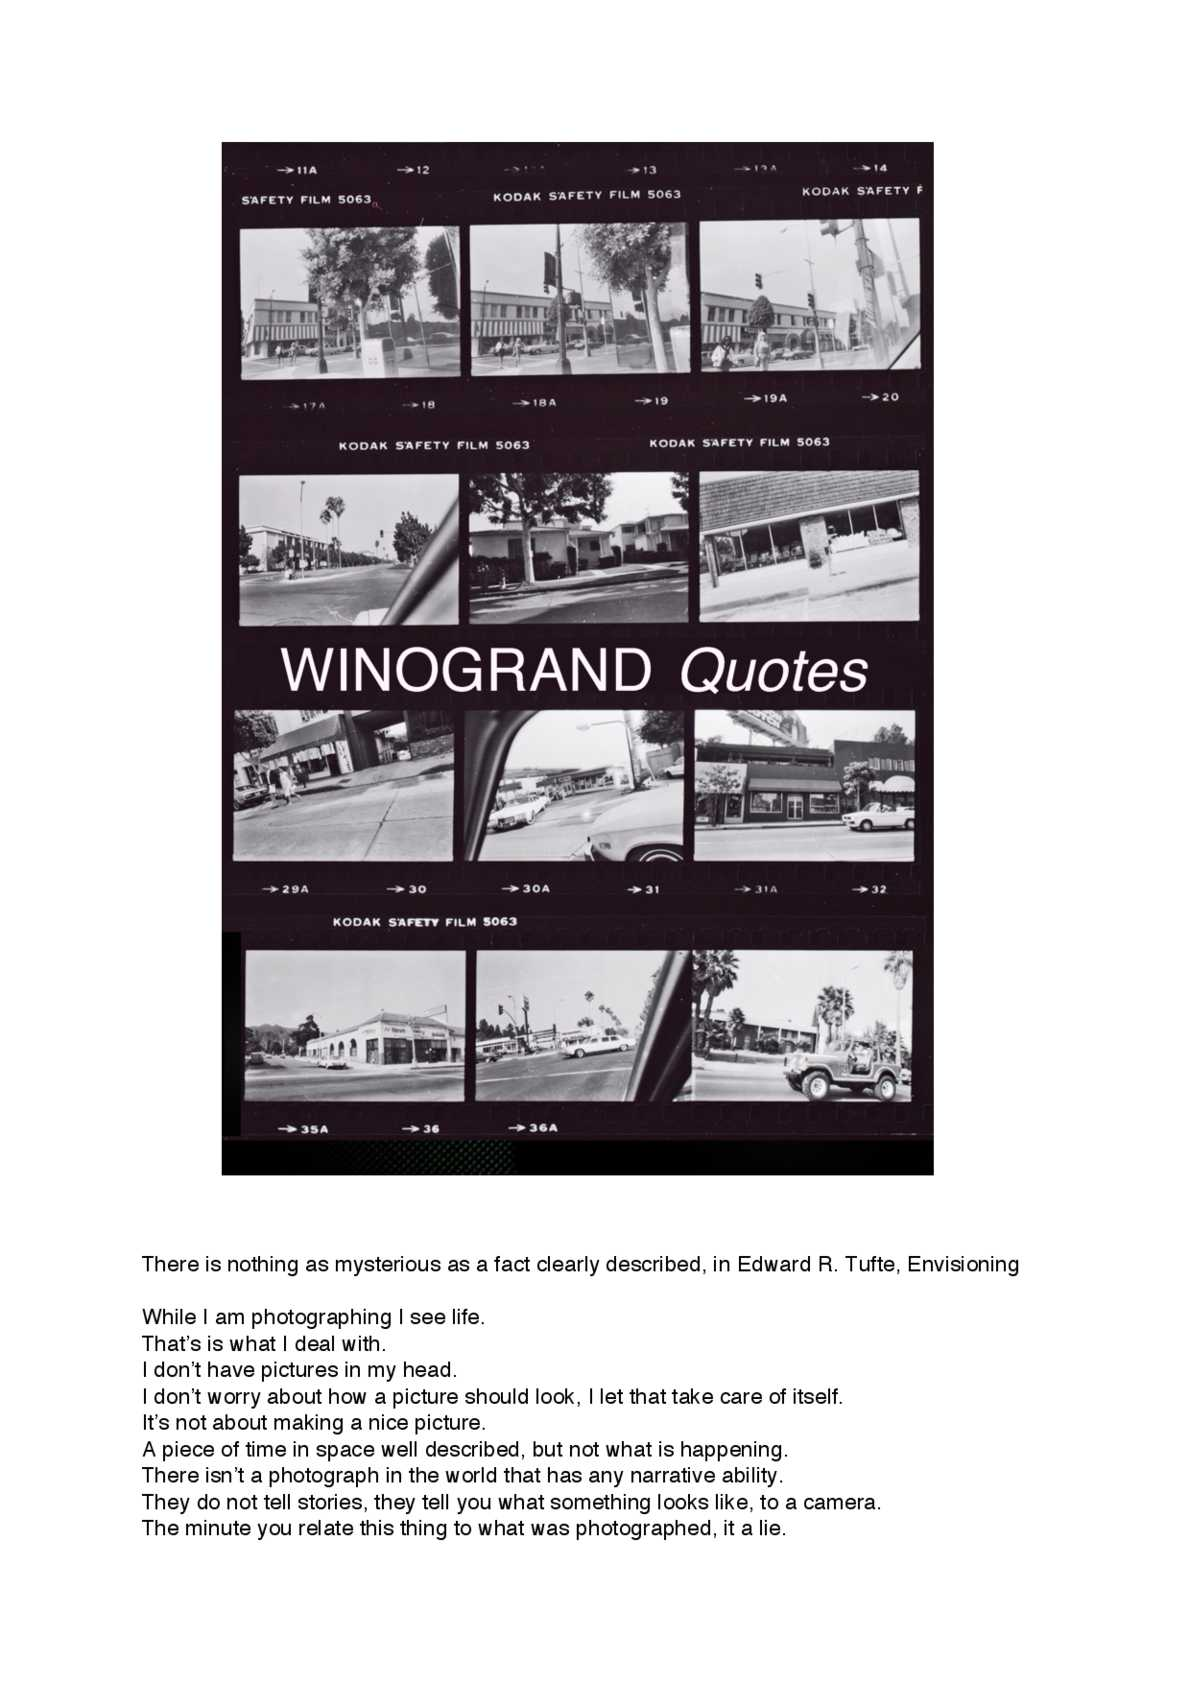 Winogrand downloadable